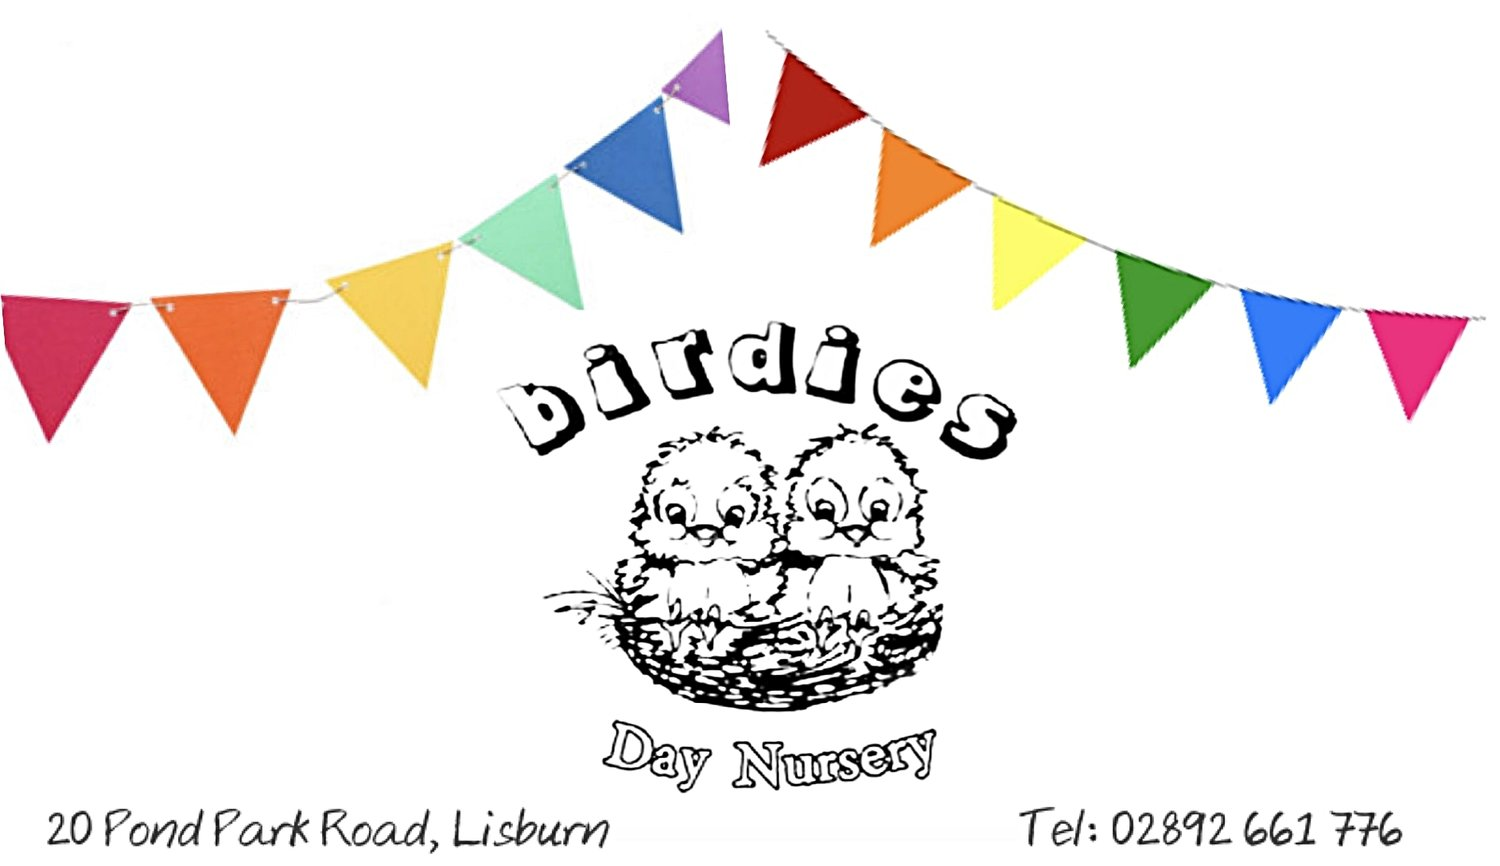 BIRDIES DAY NURSERY